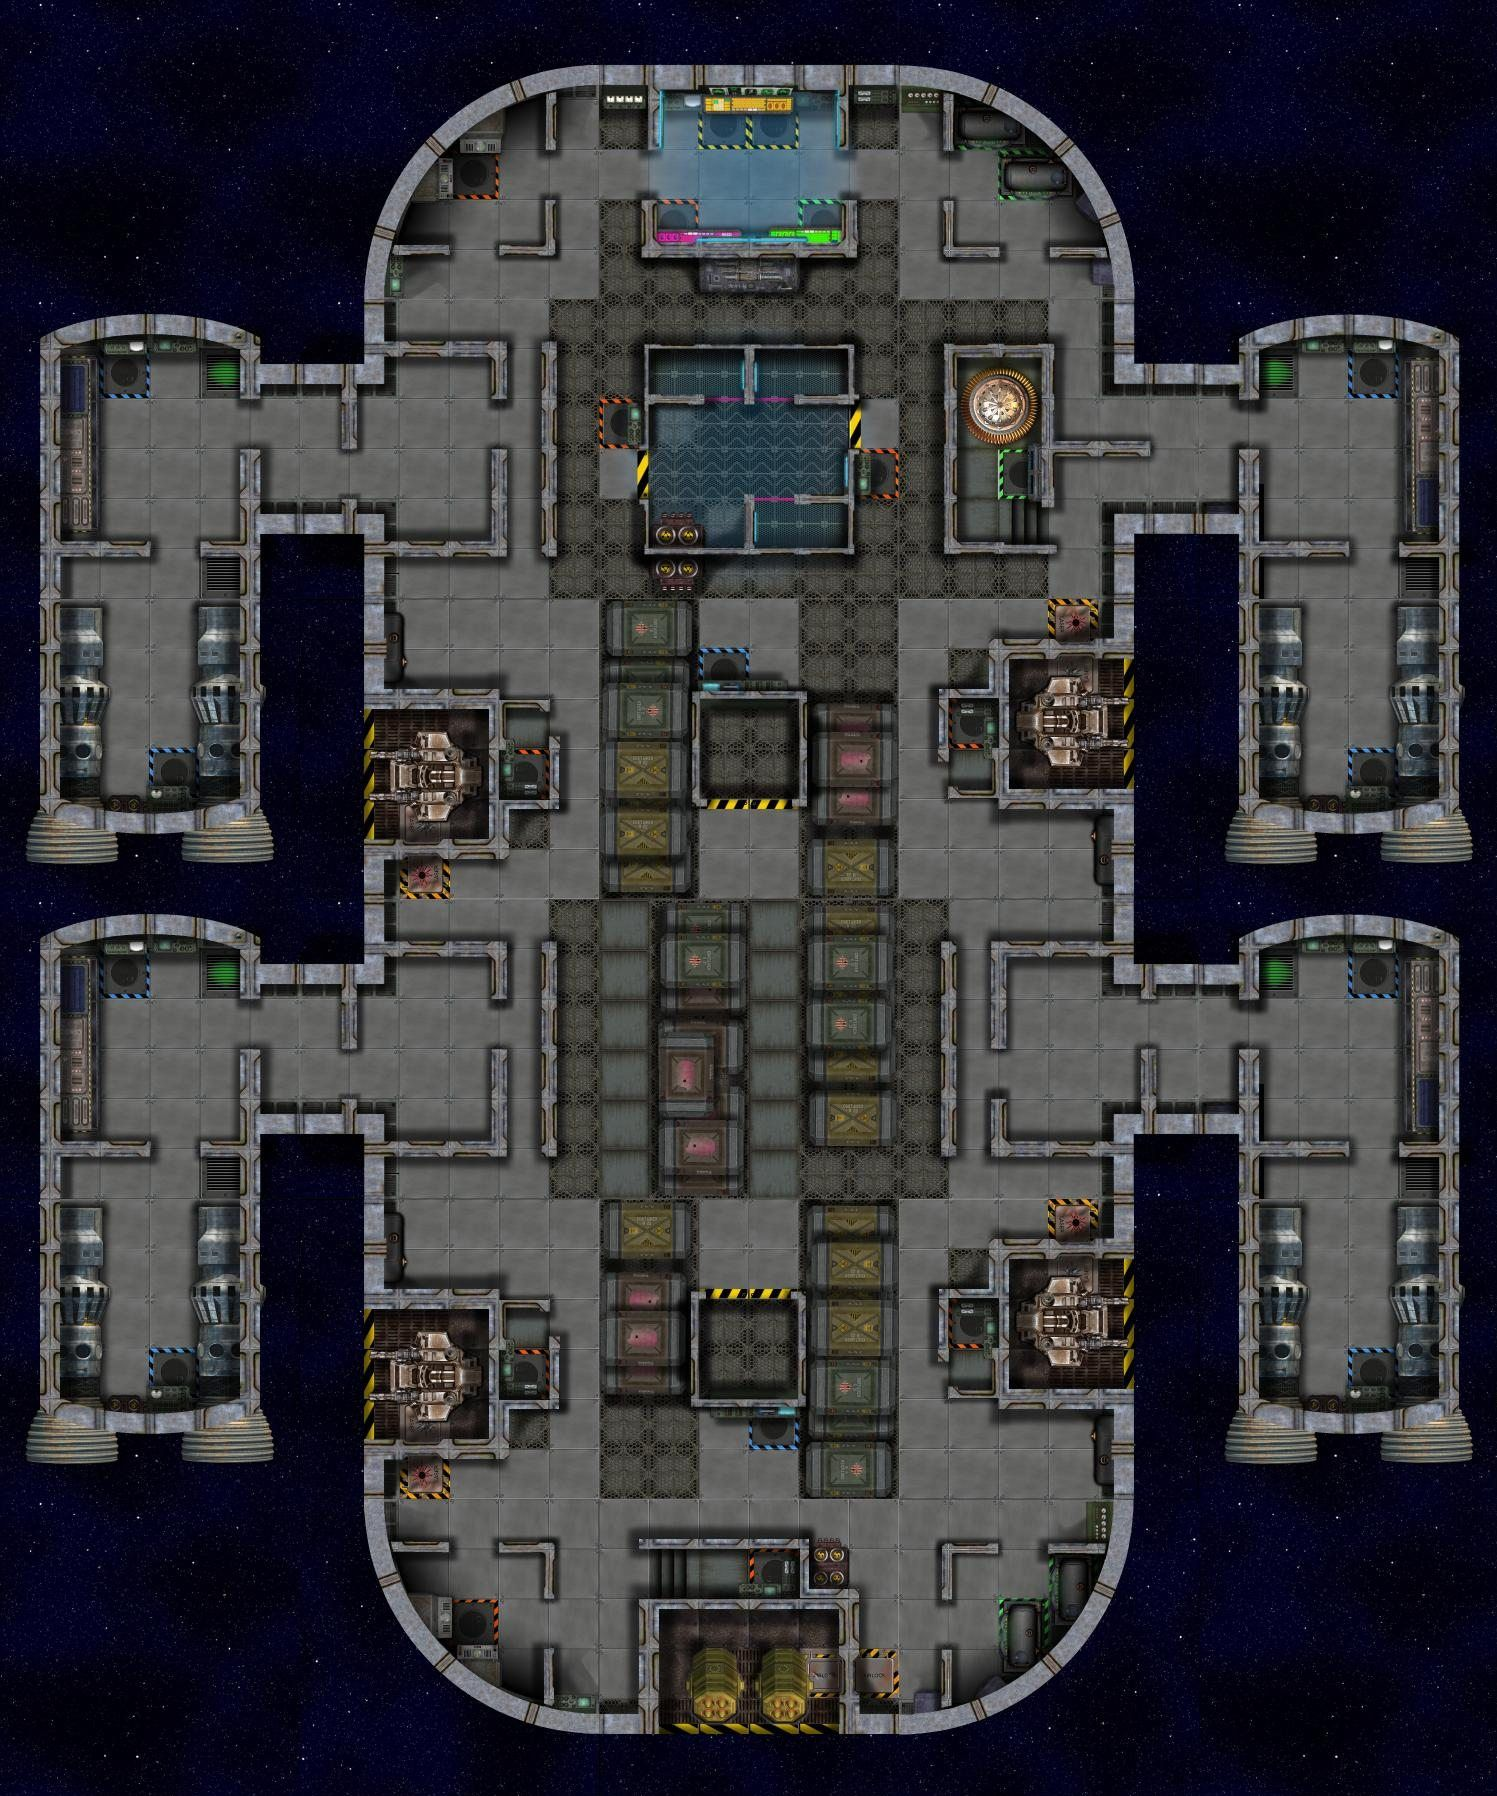 Dundjinni mapping software forums 6x6 spaceship tile set maps a dundjinni mapping software forums 6x6 spaceship tile set maps a b 3 more gumiabroncs Images